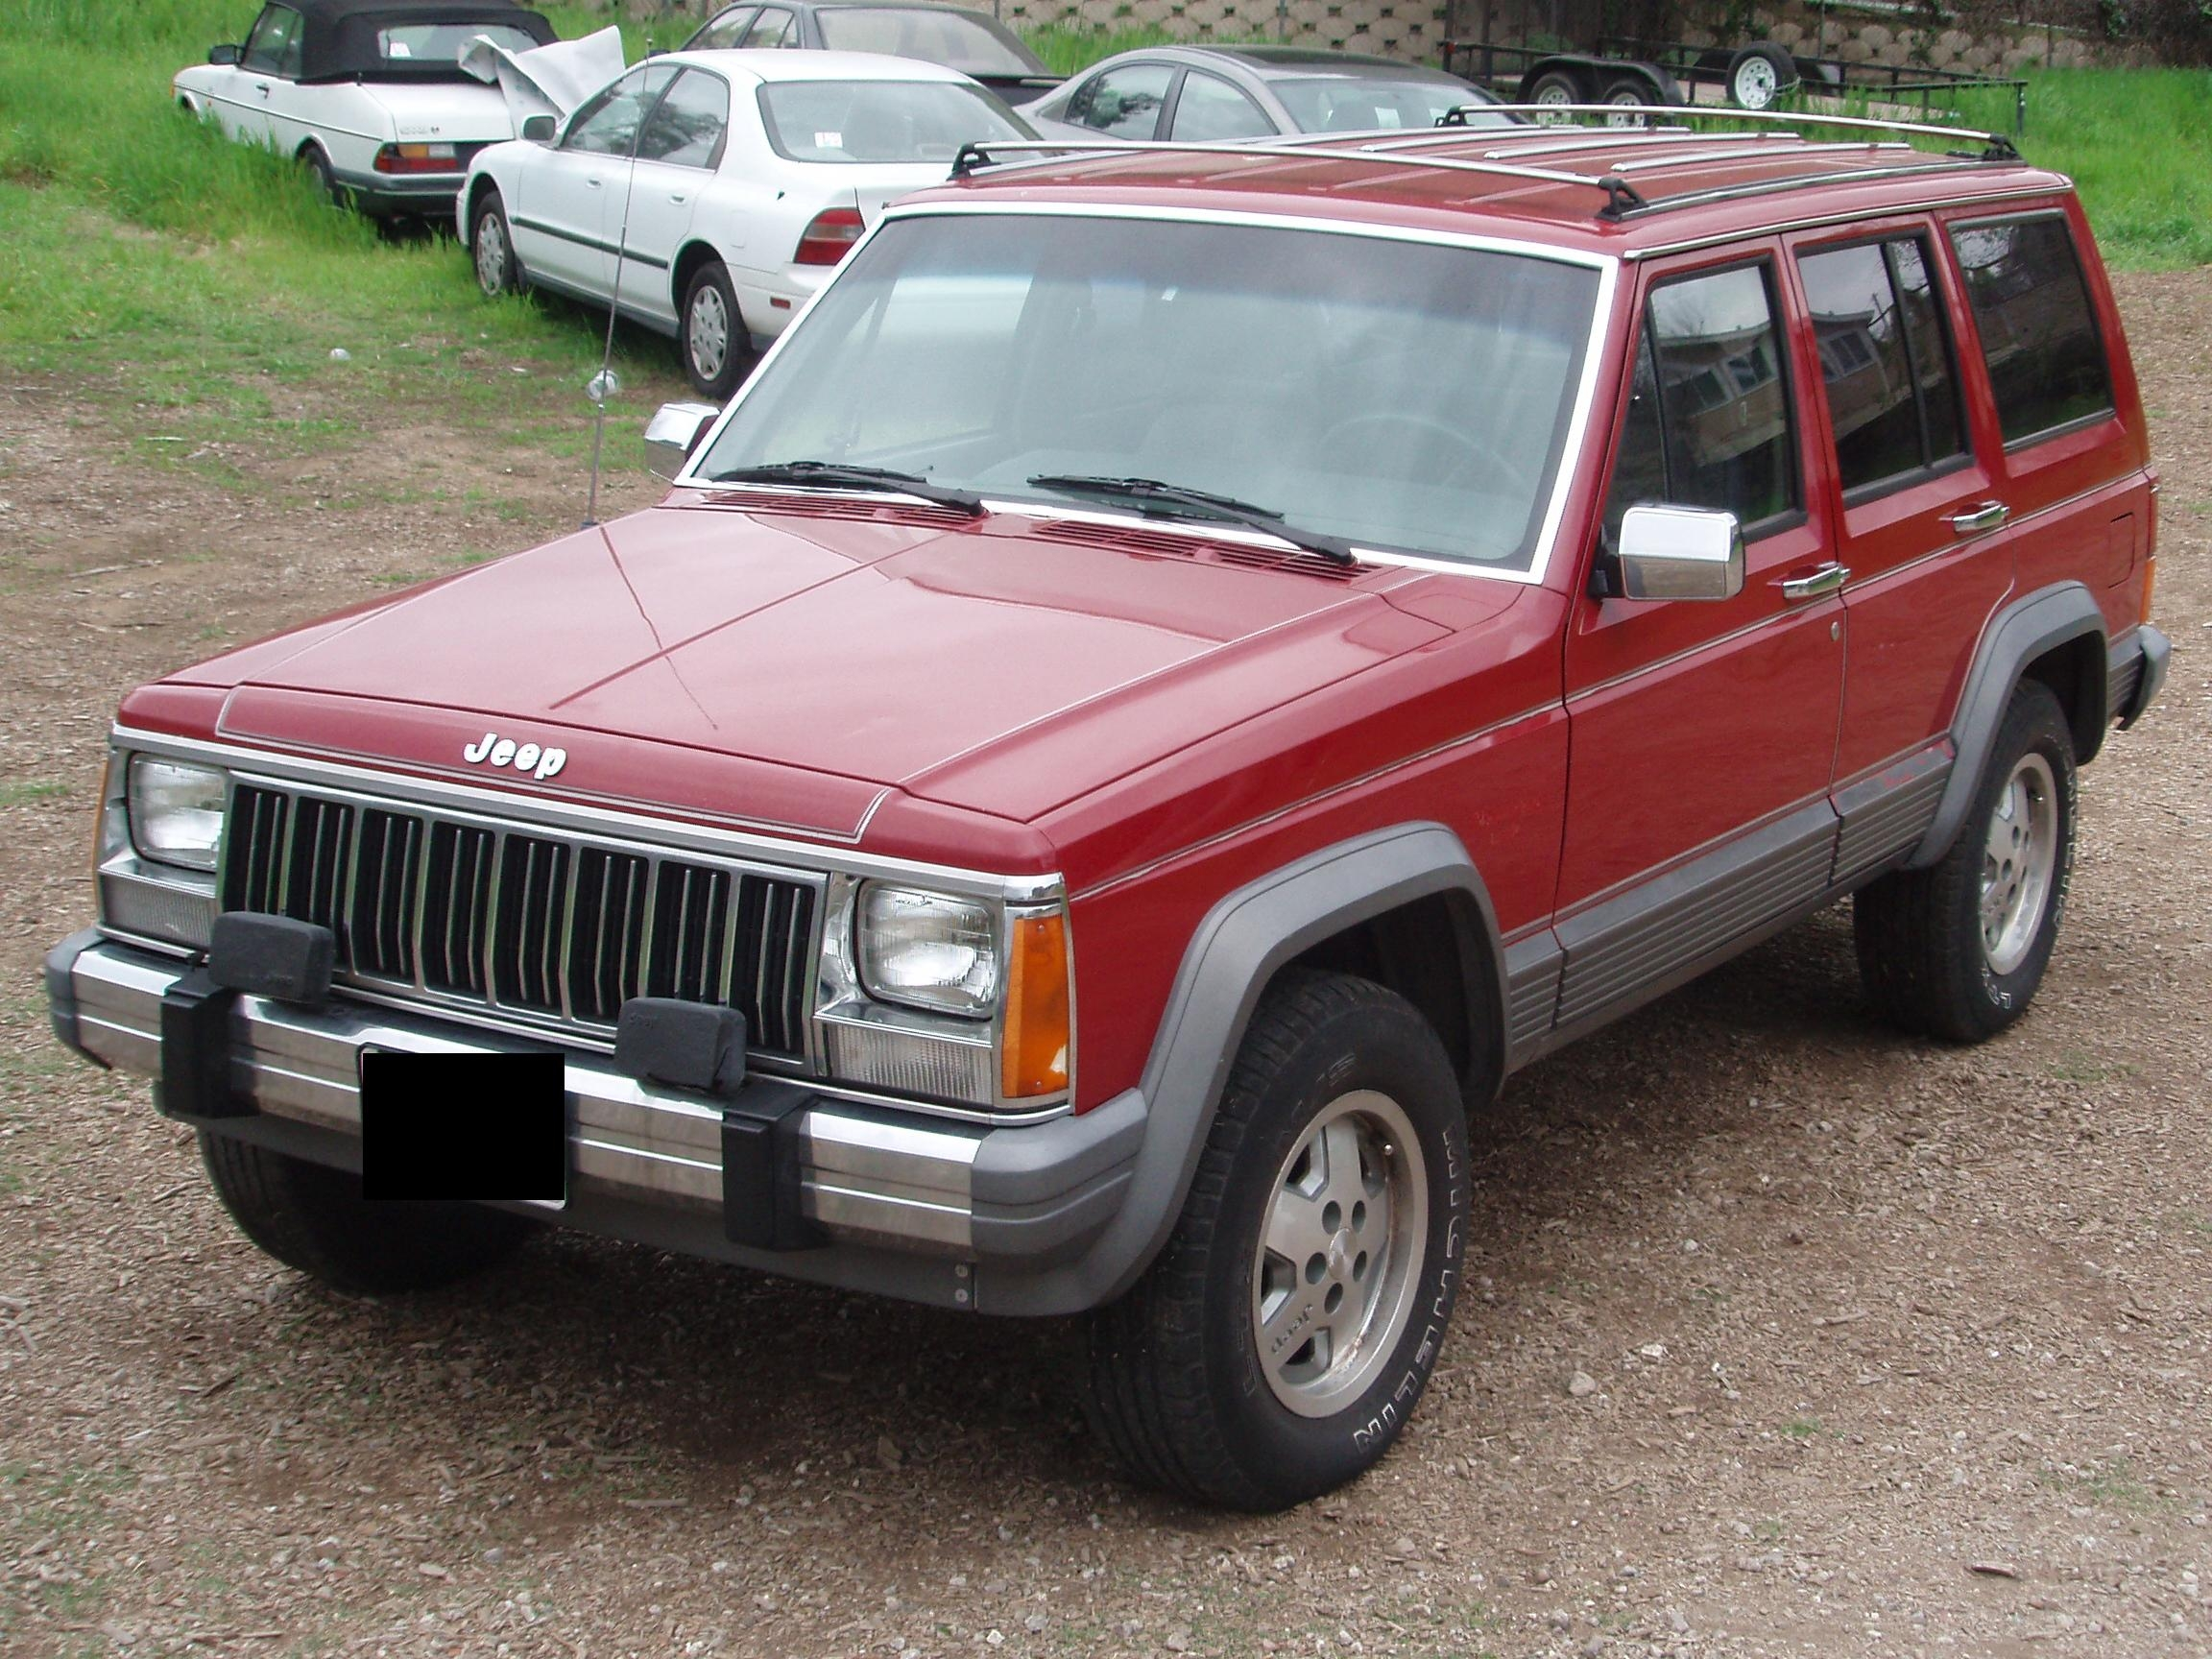 h4turbowrx 1989 jeep cherokee specs, photos, modification info at